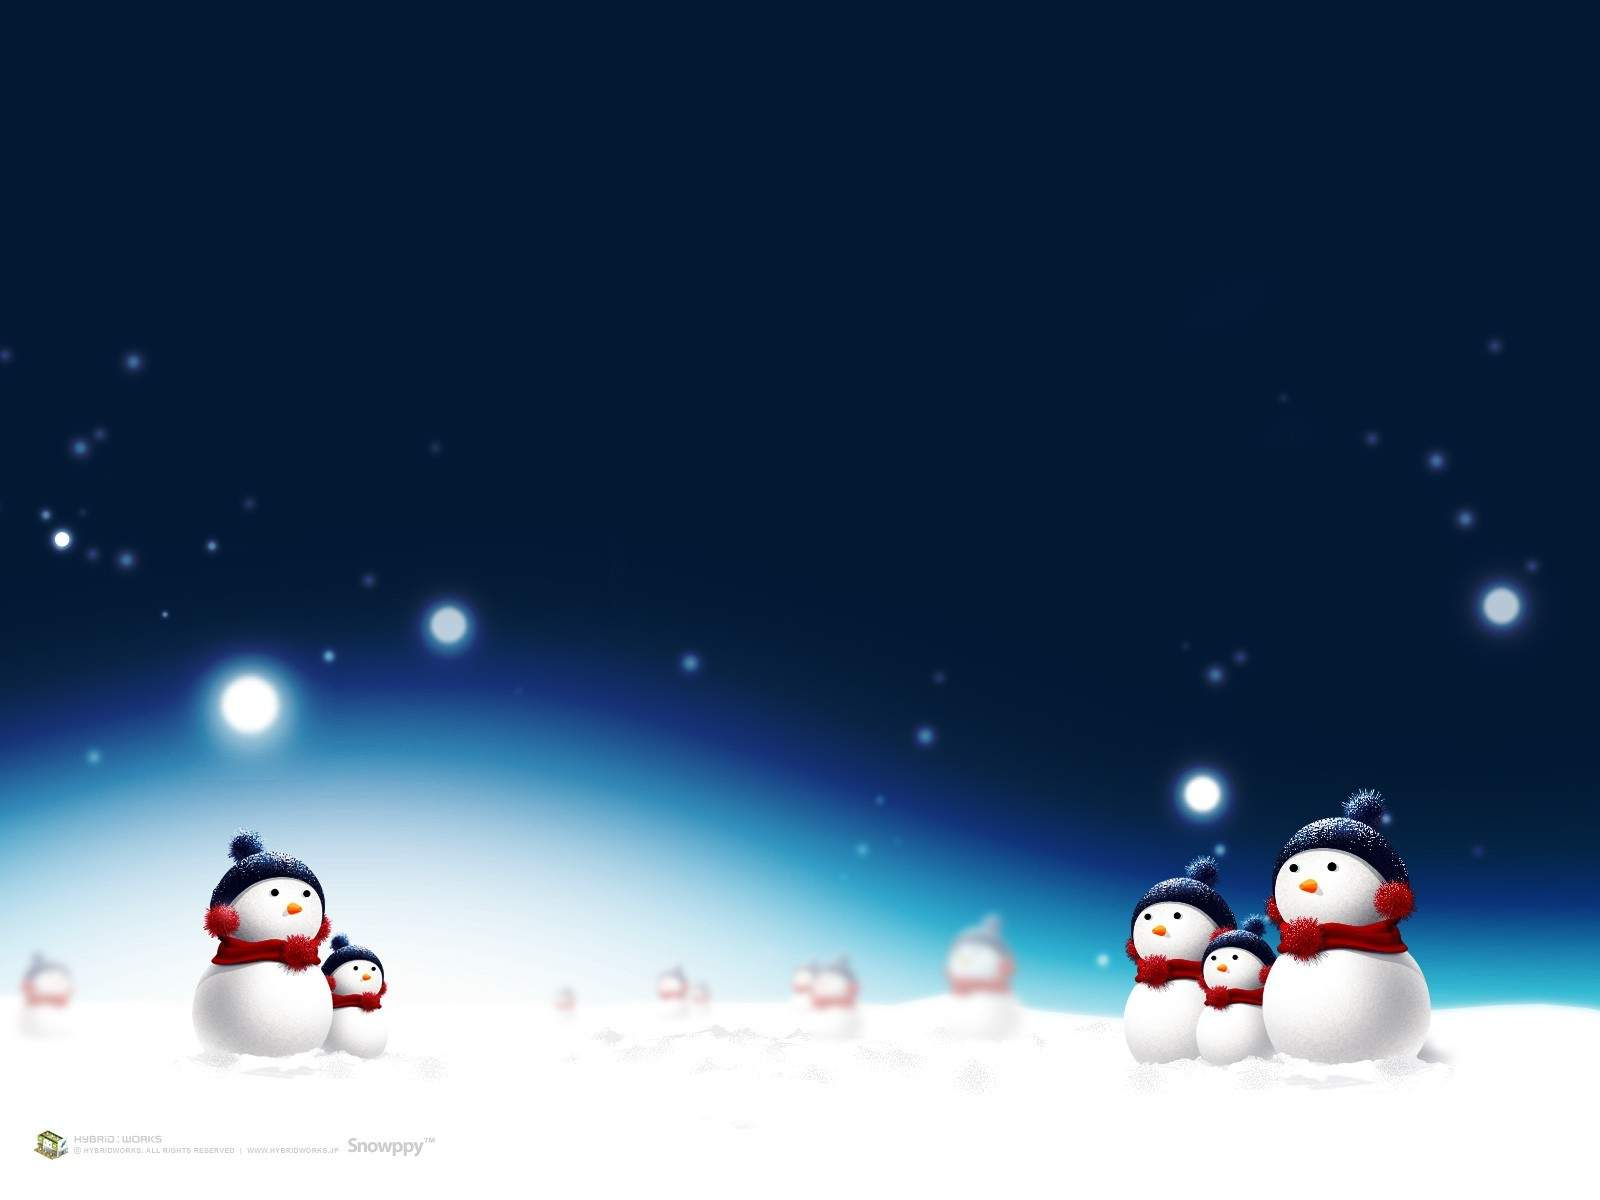 3D Christmas Backgrounds   Wallpaper Cave 3D Animated Christmas Wallpaper